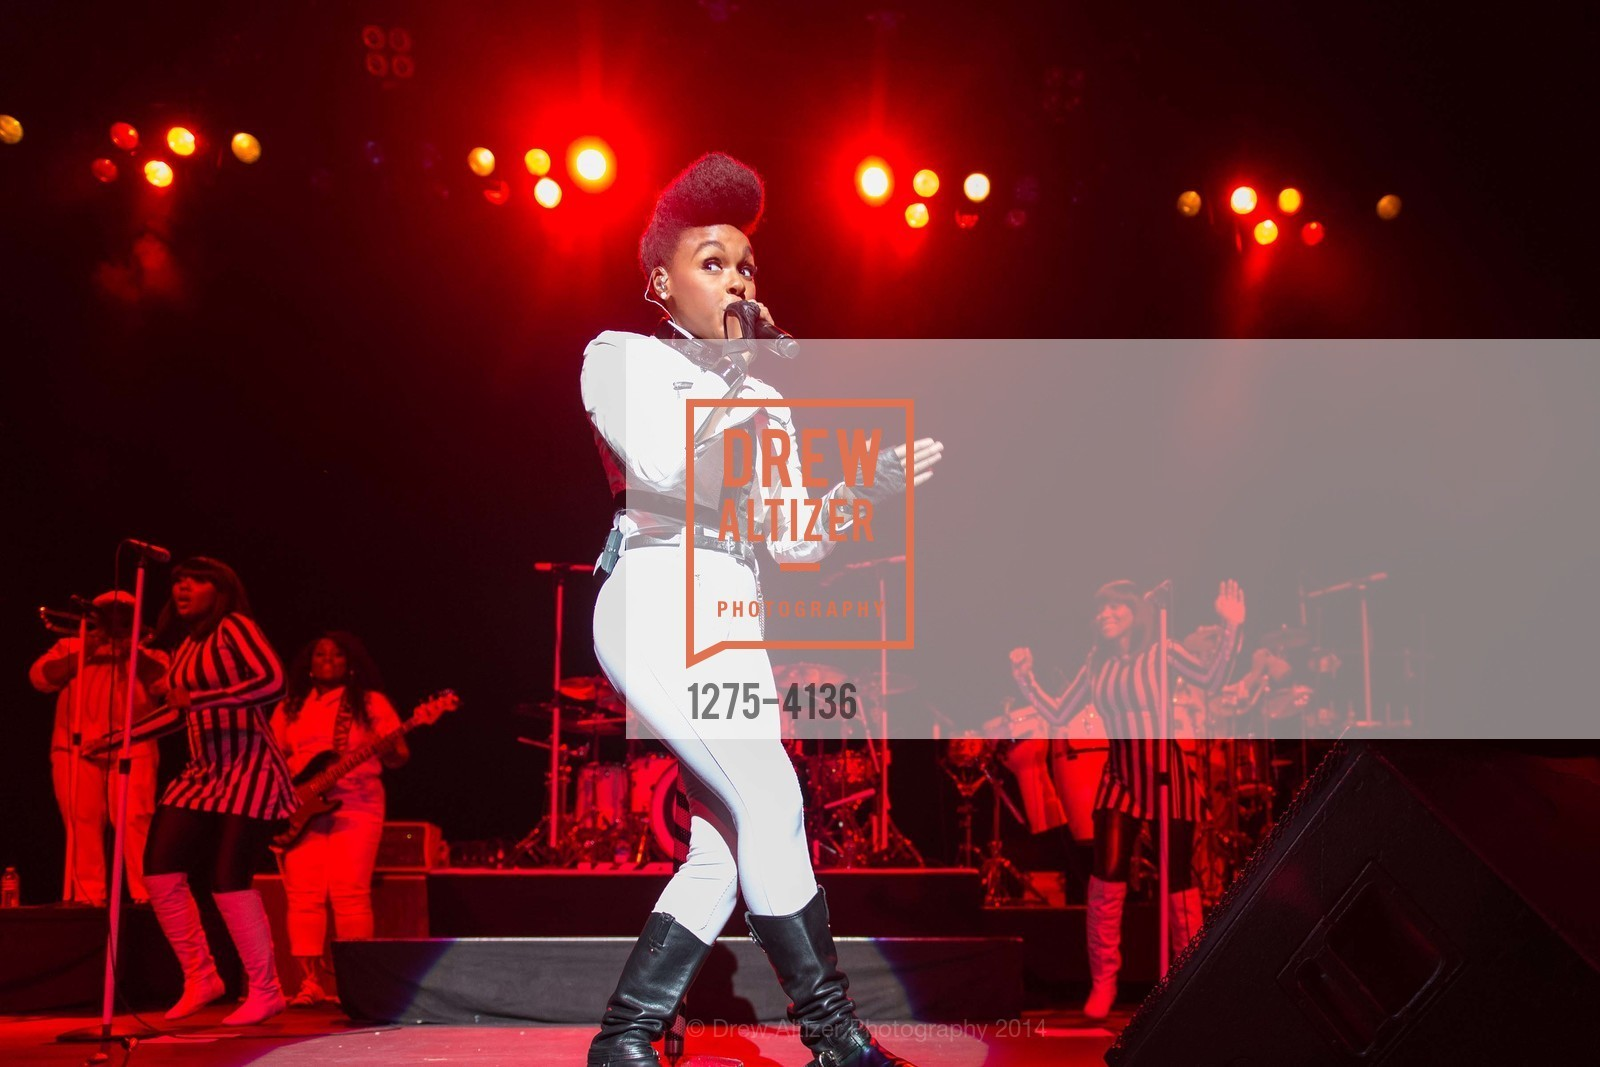 Performance By Janelle Monae, Photo #1275-4136